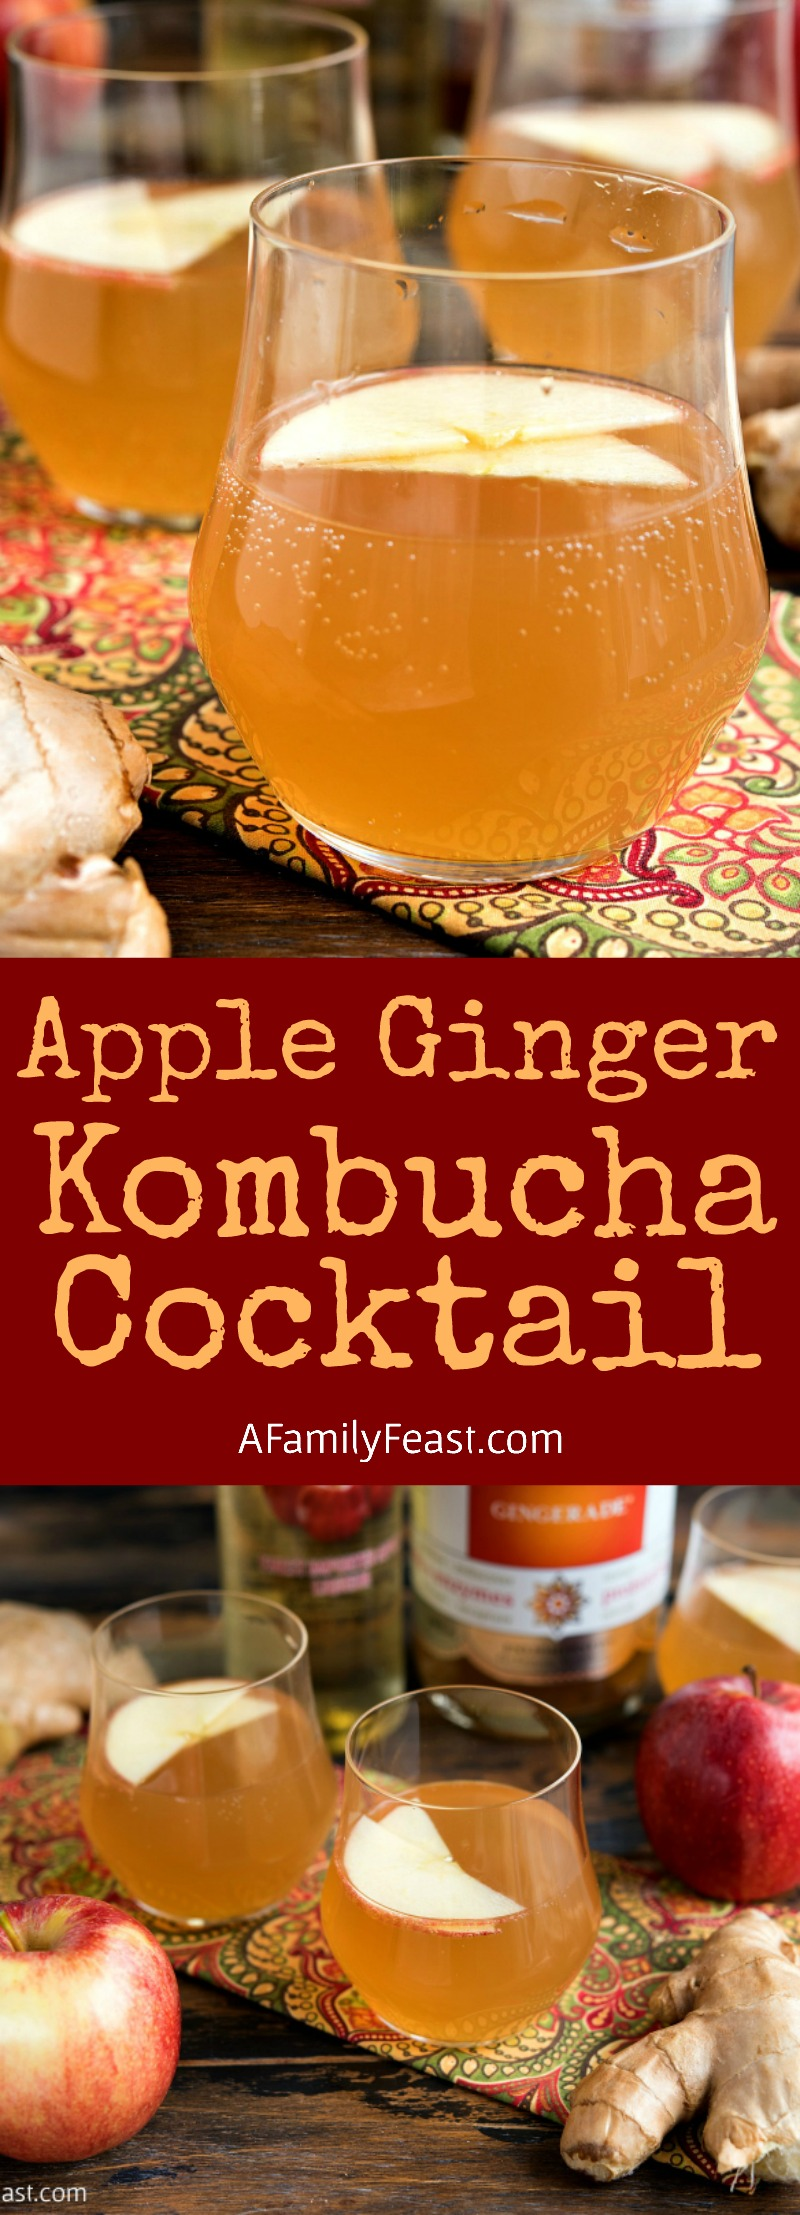 Apple Ginger Kombucha Cocktail